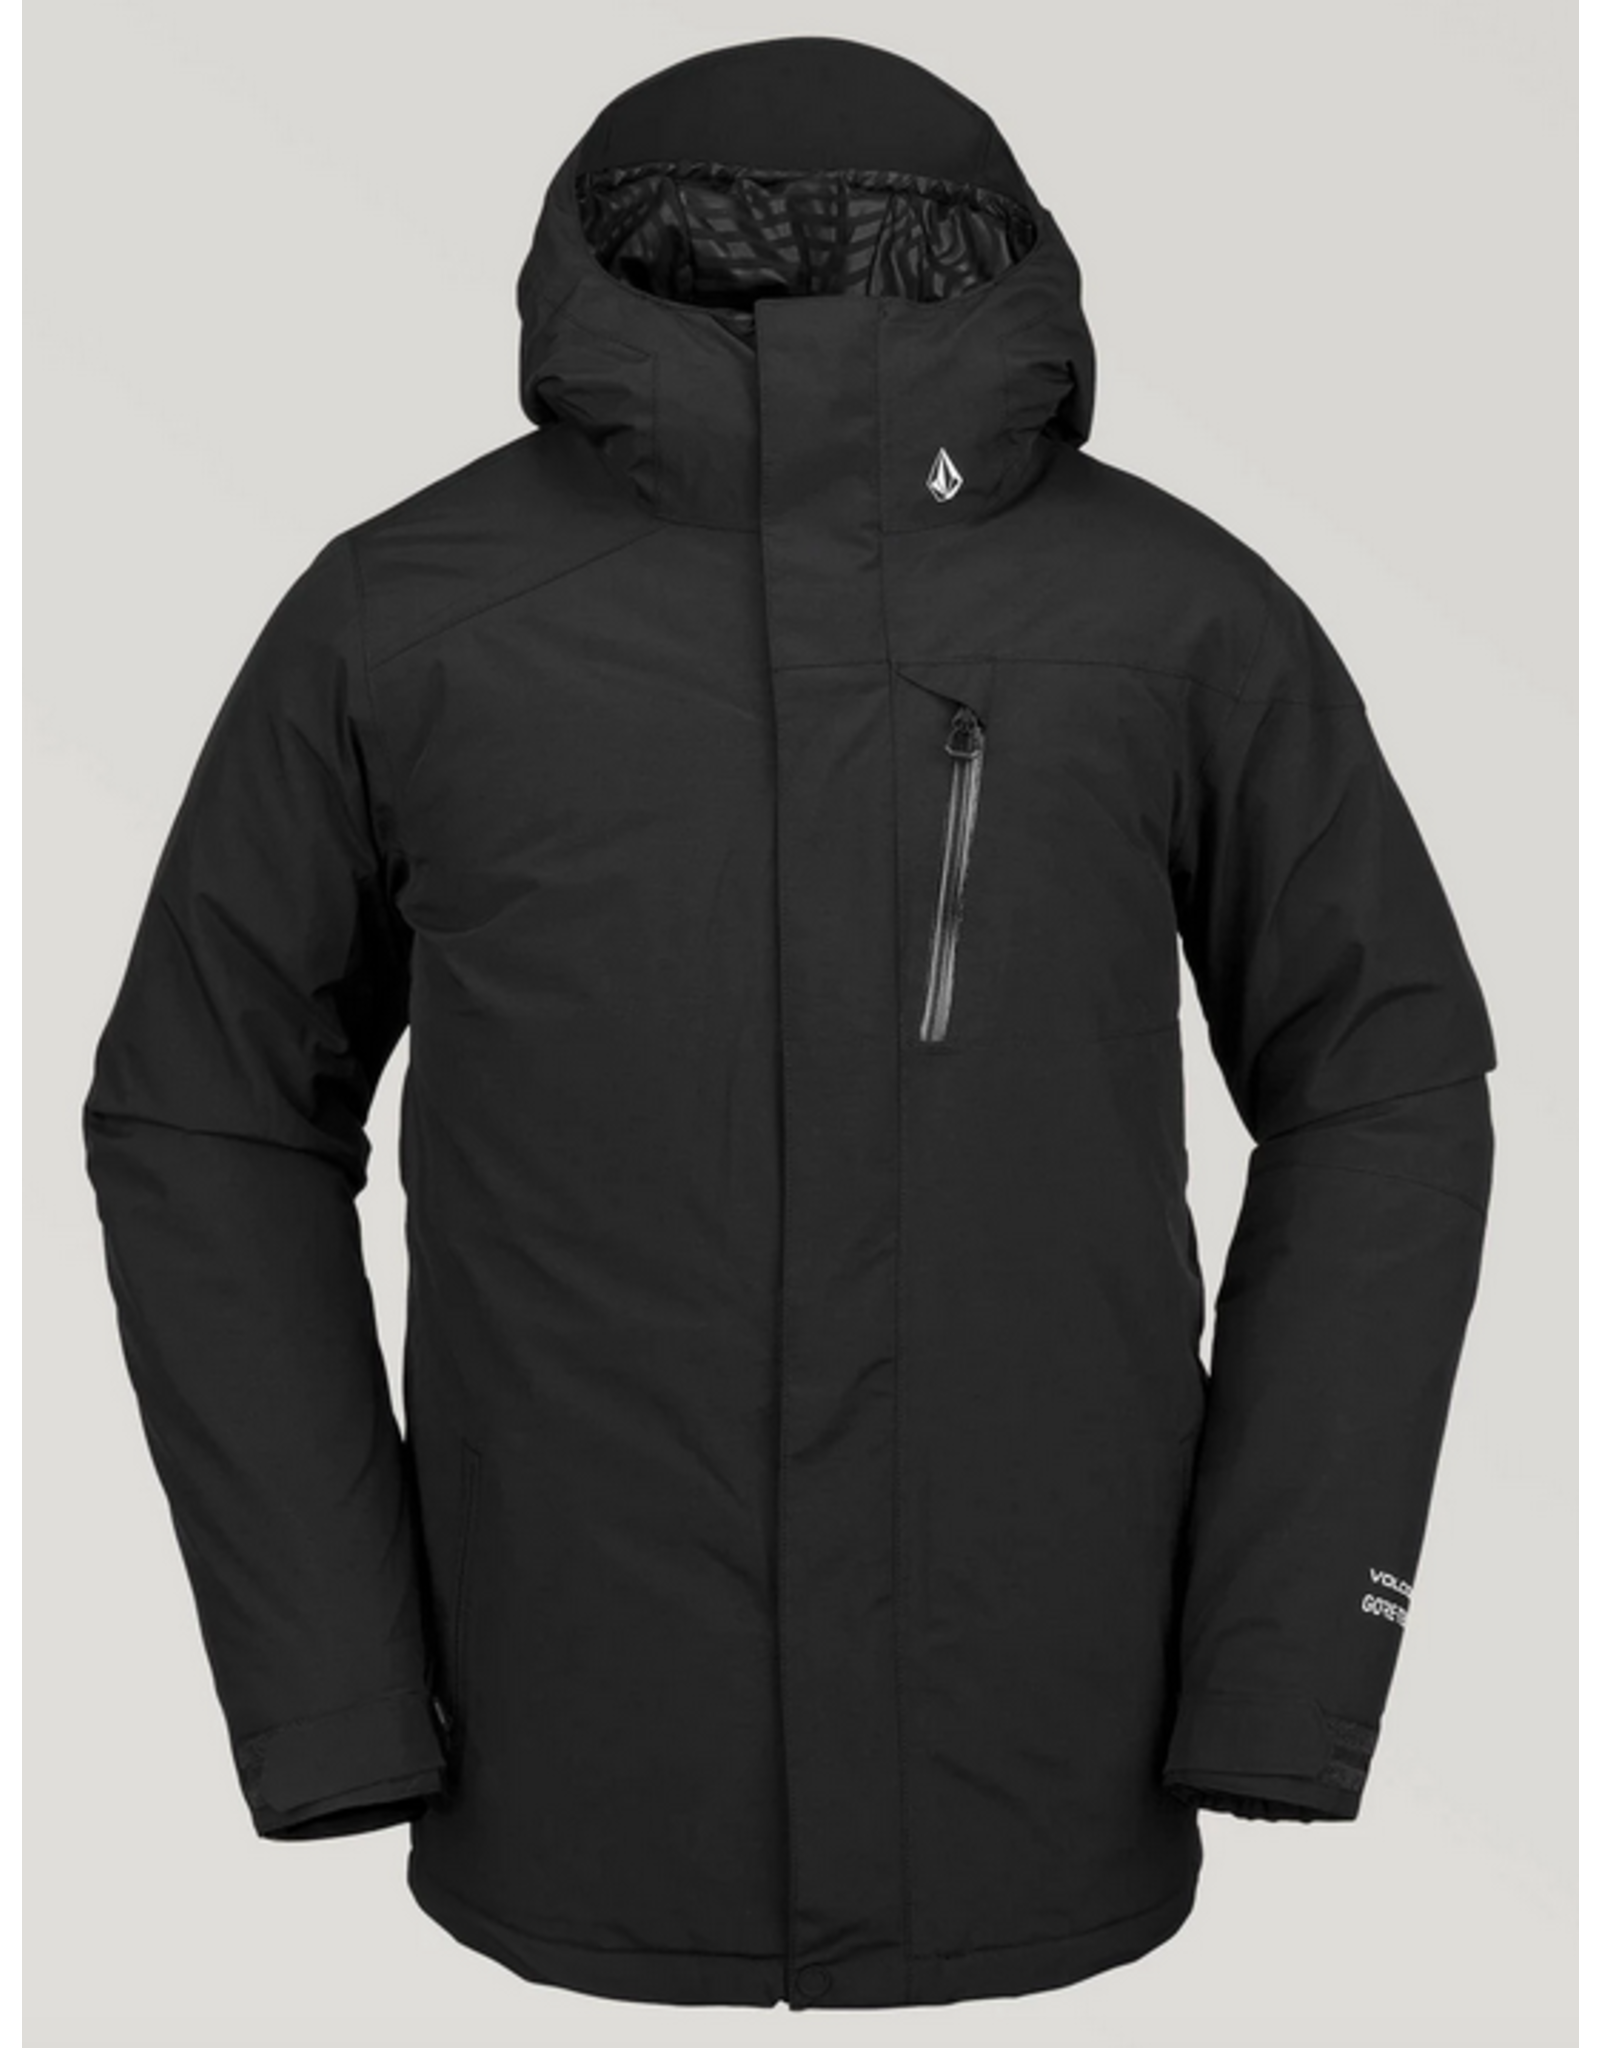 VOLCOM VOLCOM 2020 LIGHT INS GORE-TEX JACKET